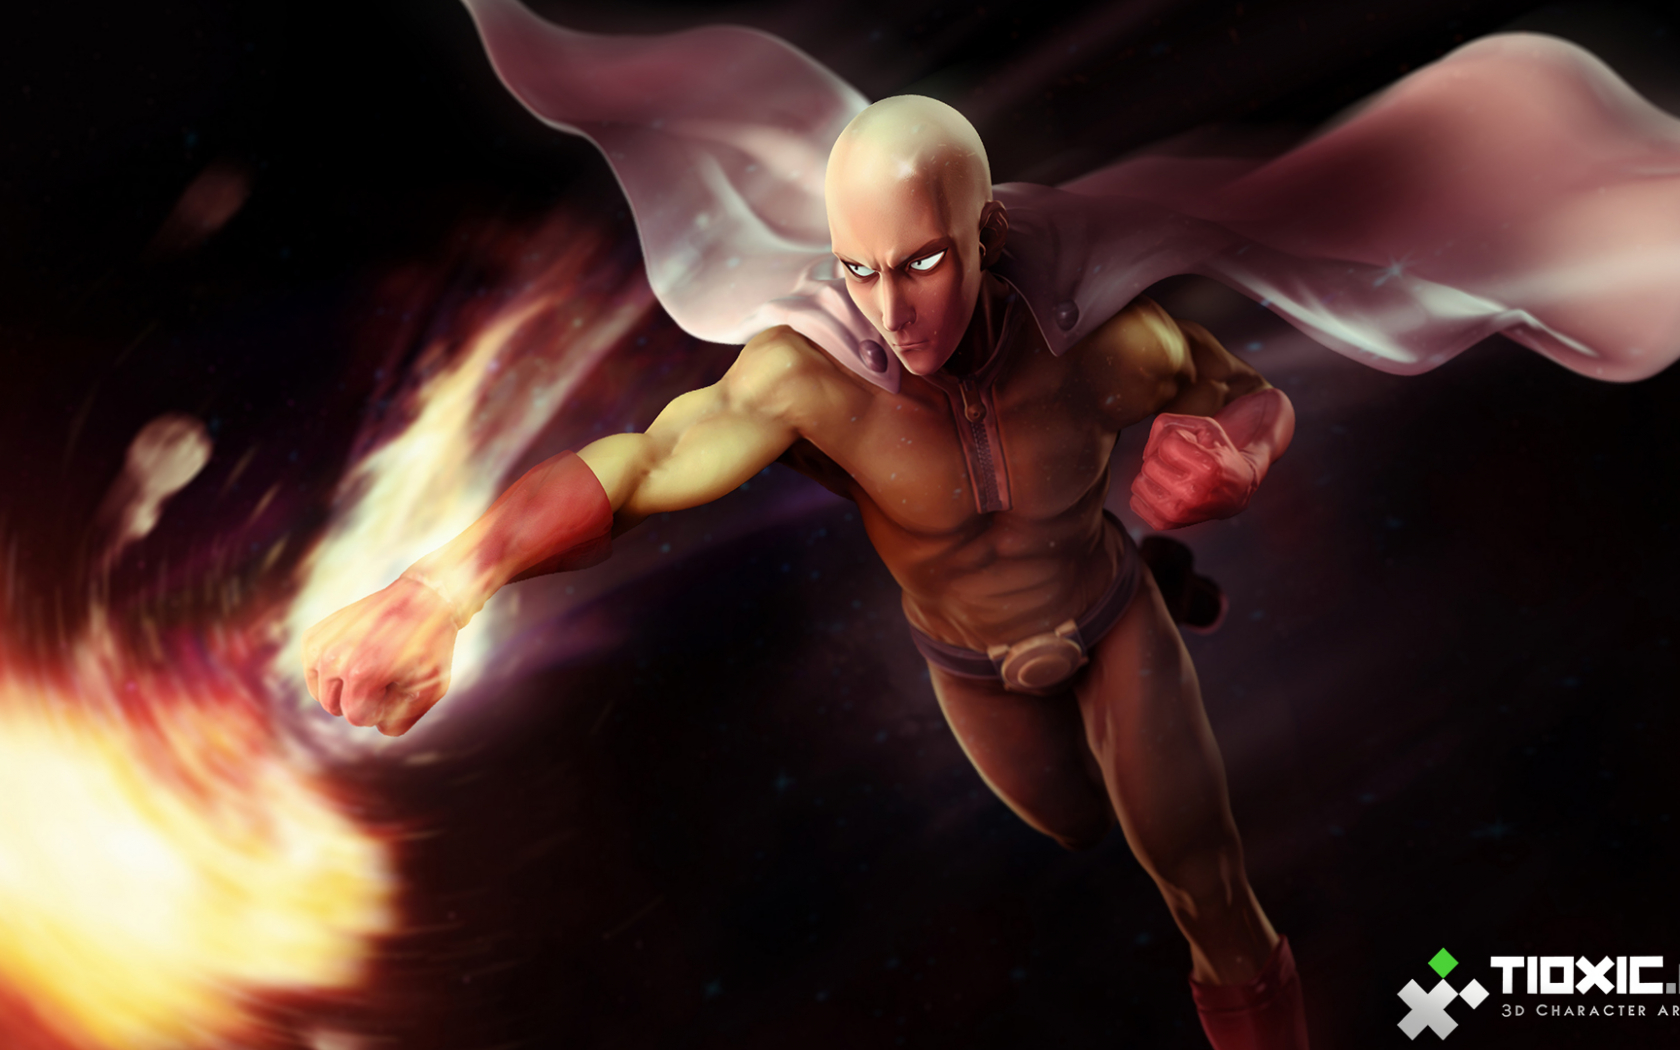 Free Download One Punch Man Hd Wallpaper 1920x1080 For Your